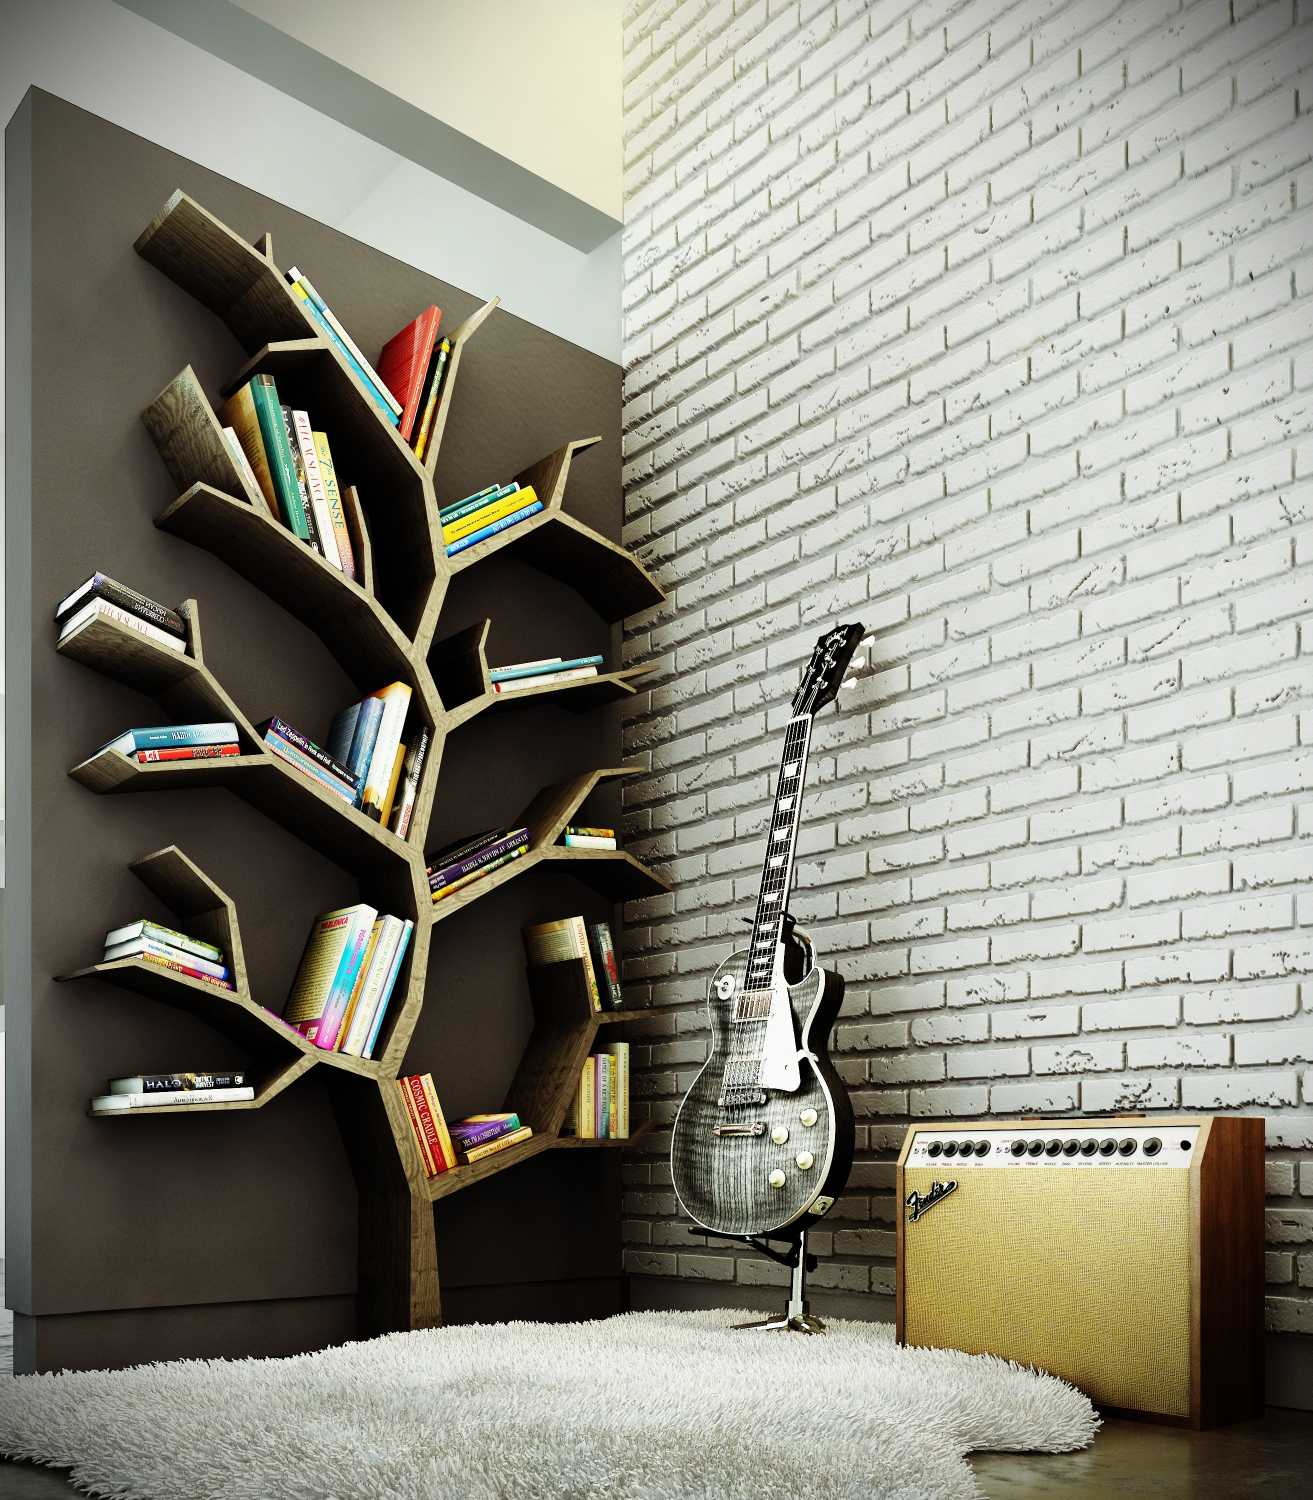 Bookshelf Ideas Part - 50: 1. Geometric Tree